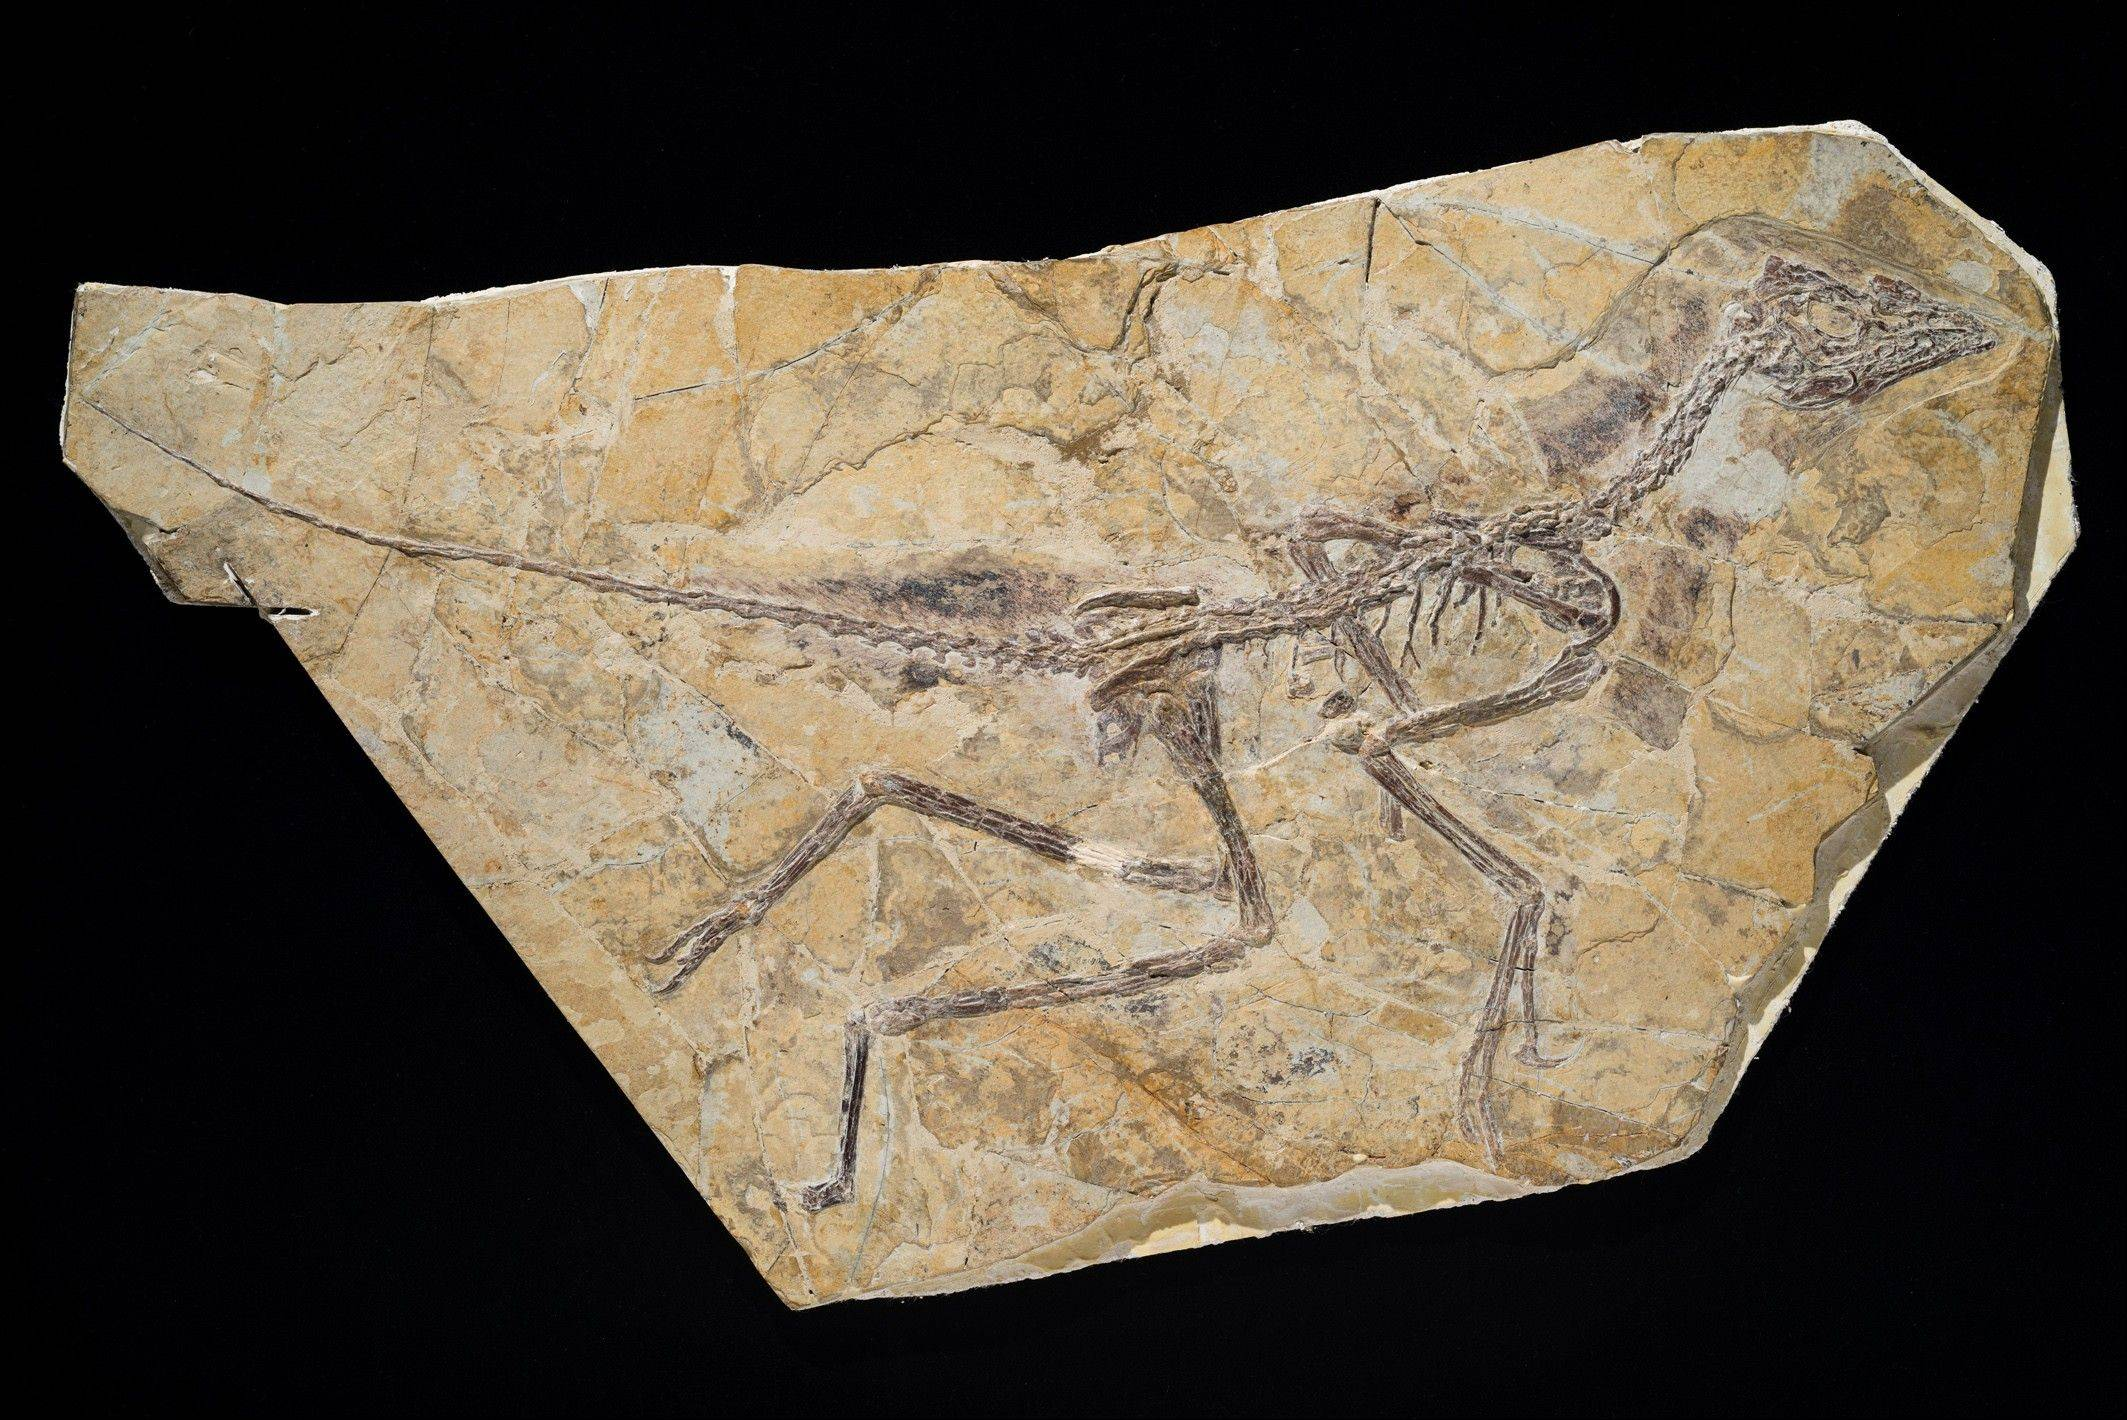 This is the skeleton of a recently discovered dinosaur dubbed Aurornis xui that roamed China during the middle to late Jurassic period. A new study published in the journal Nature finds the discovery restores the fossil creature Archaeopteryx back to the �bird� branch of the evolutionary family tree.